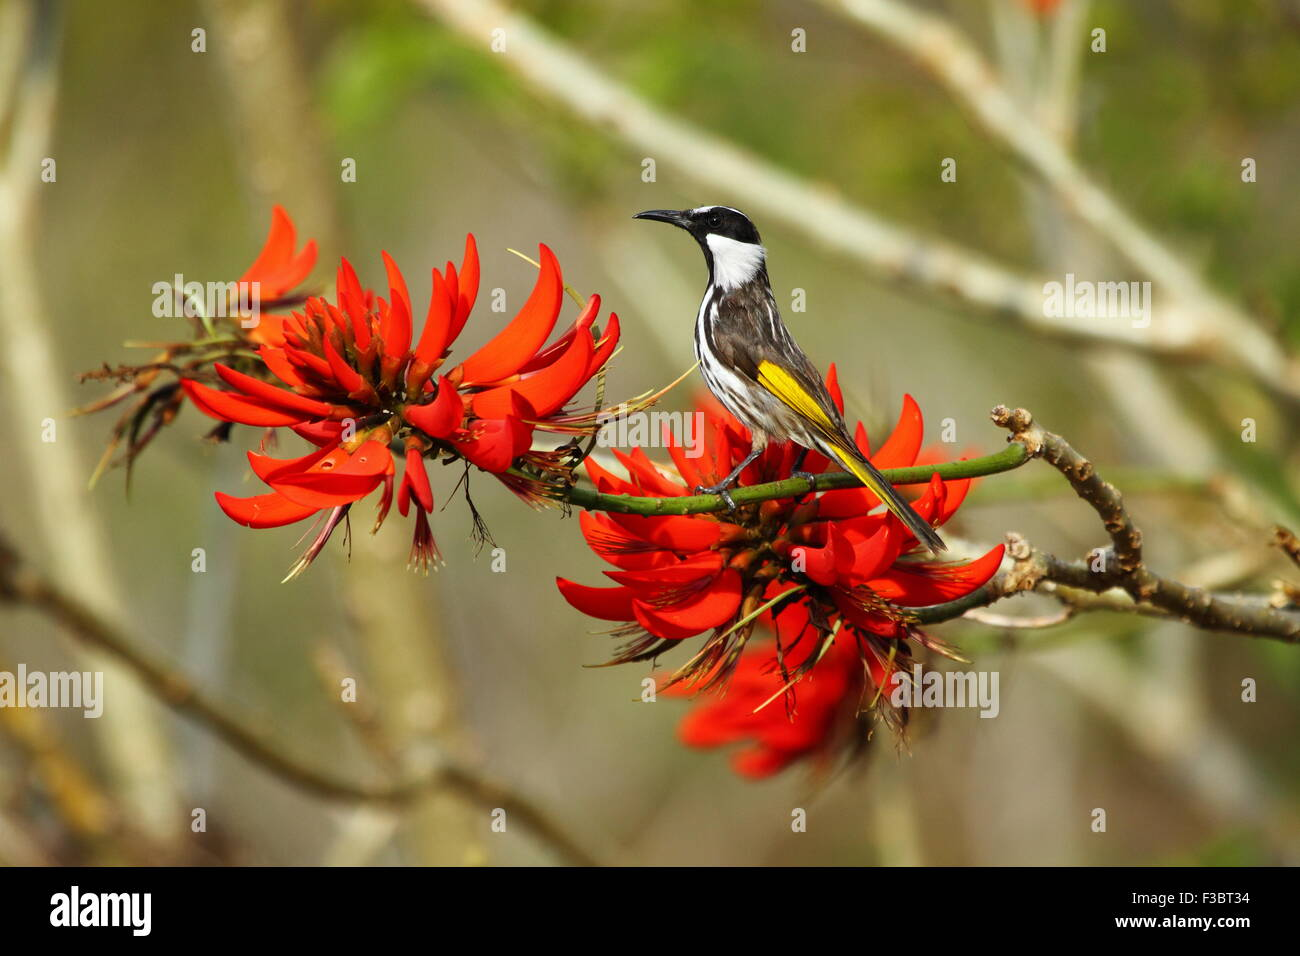 White-cheeked Honeyeater foraging on the nectar of a Coral Tree. - Stock Image